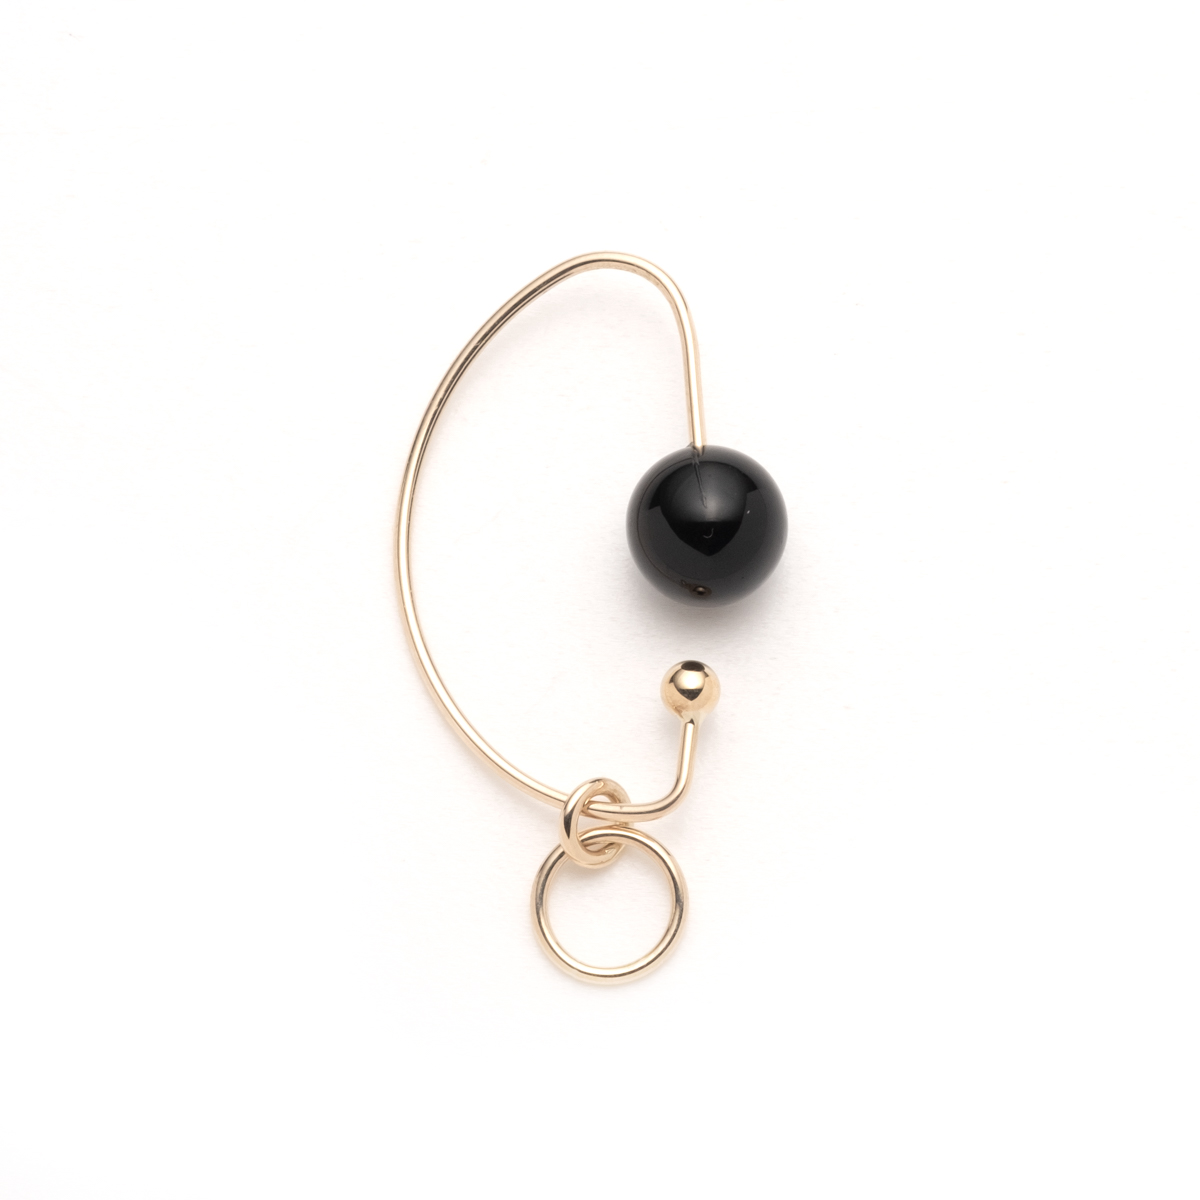 Onyx Miro Ear Cuff IN45KCF new 新作 イヤーカフ イヤカフ オニキス 天然石